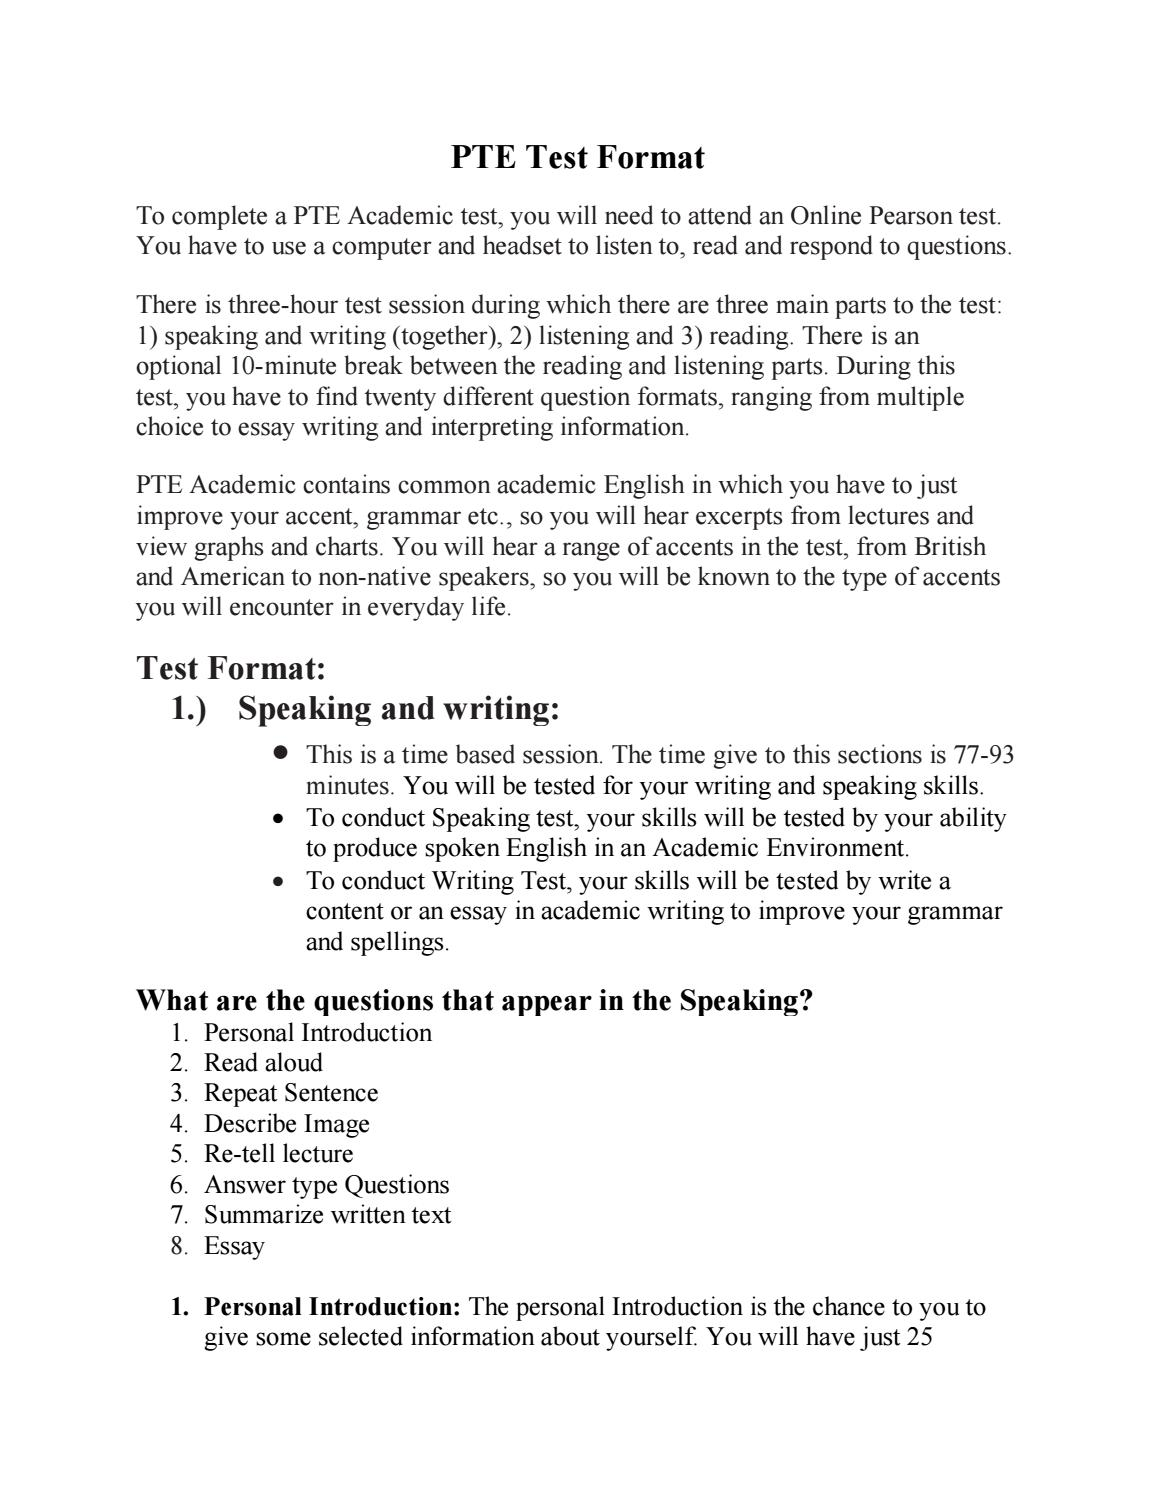 PTE Academics: Practice Test for PTE with their PTE Test